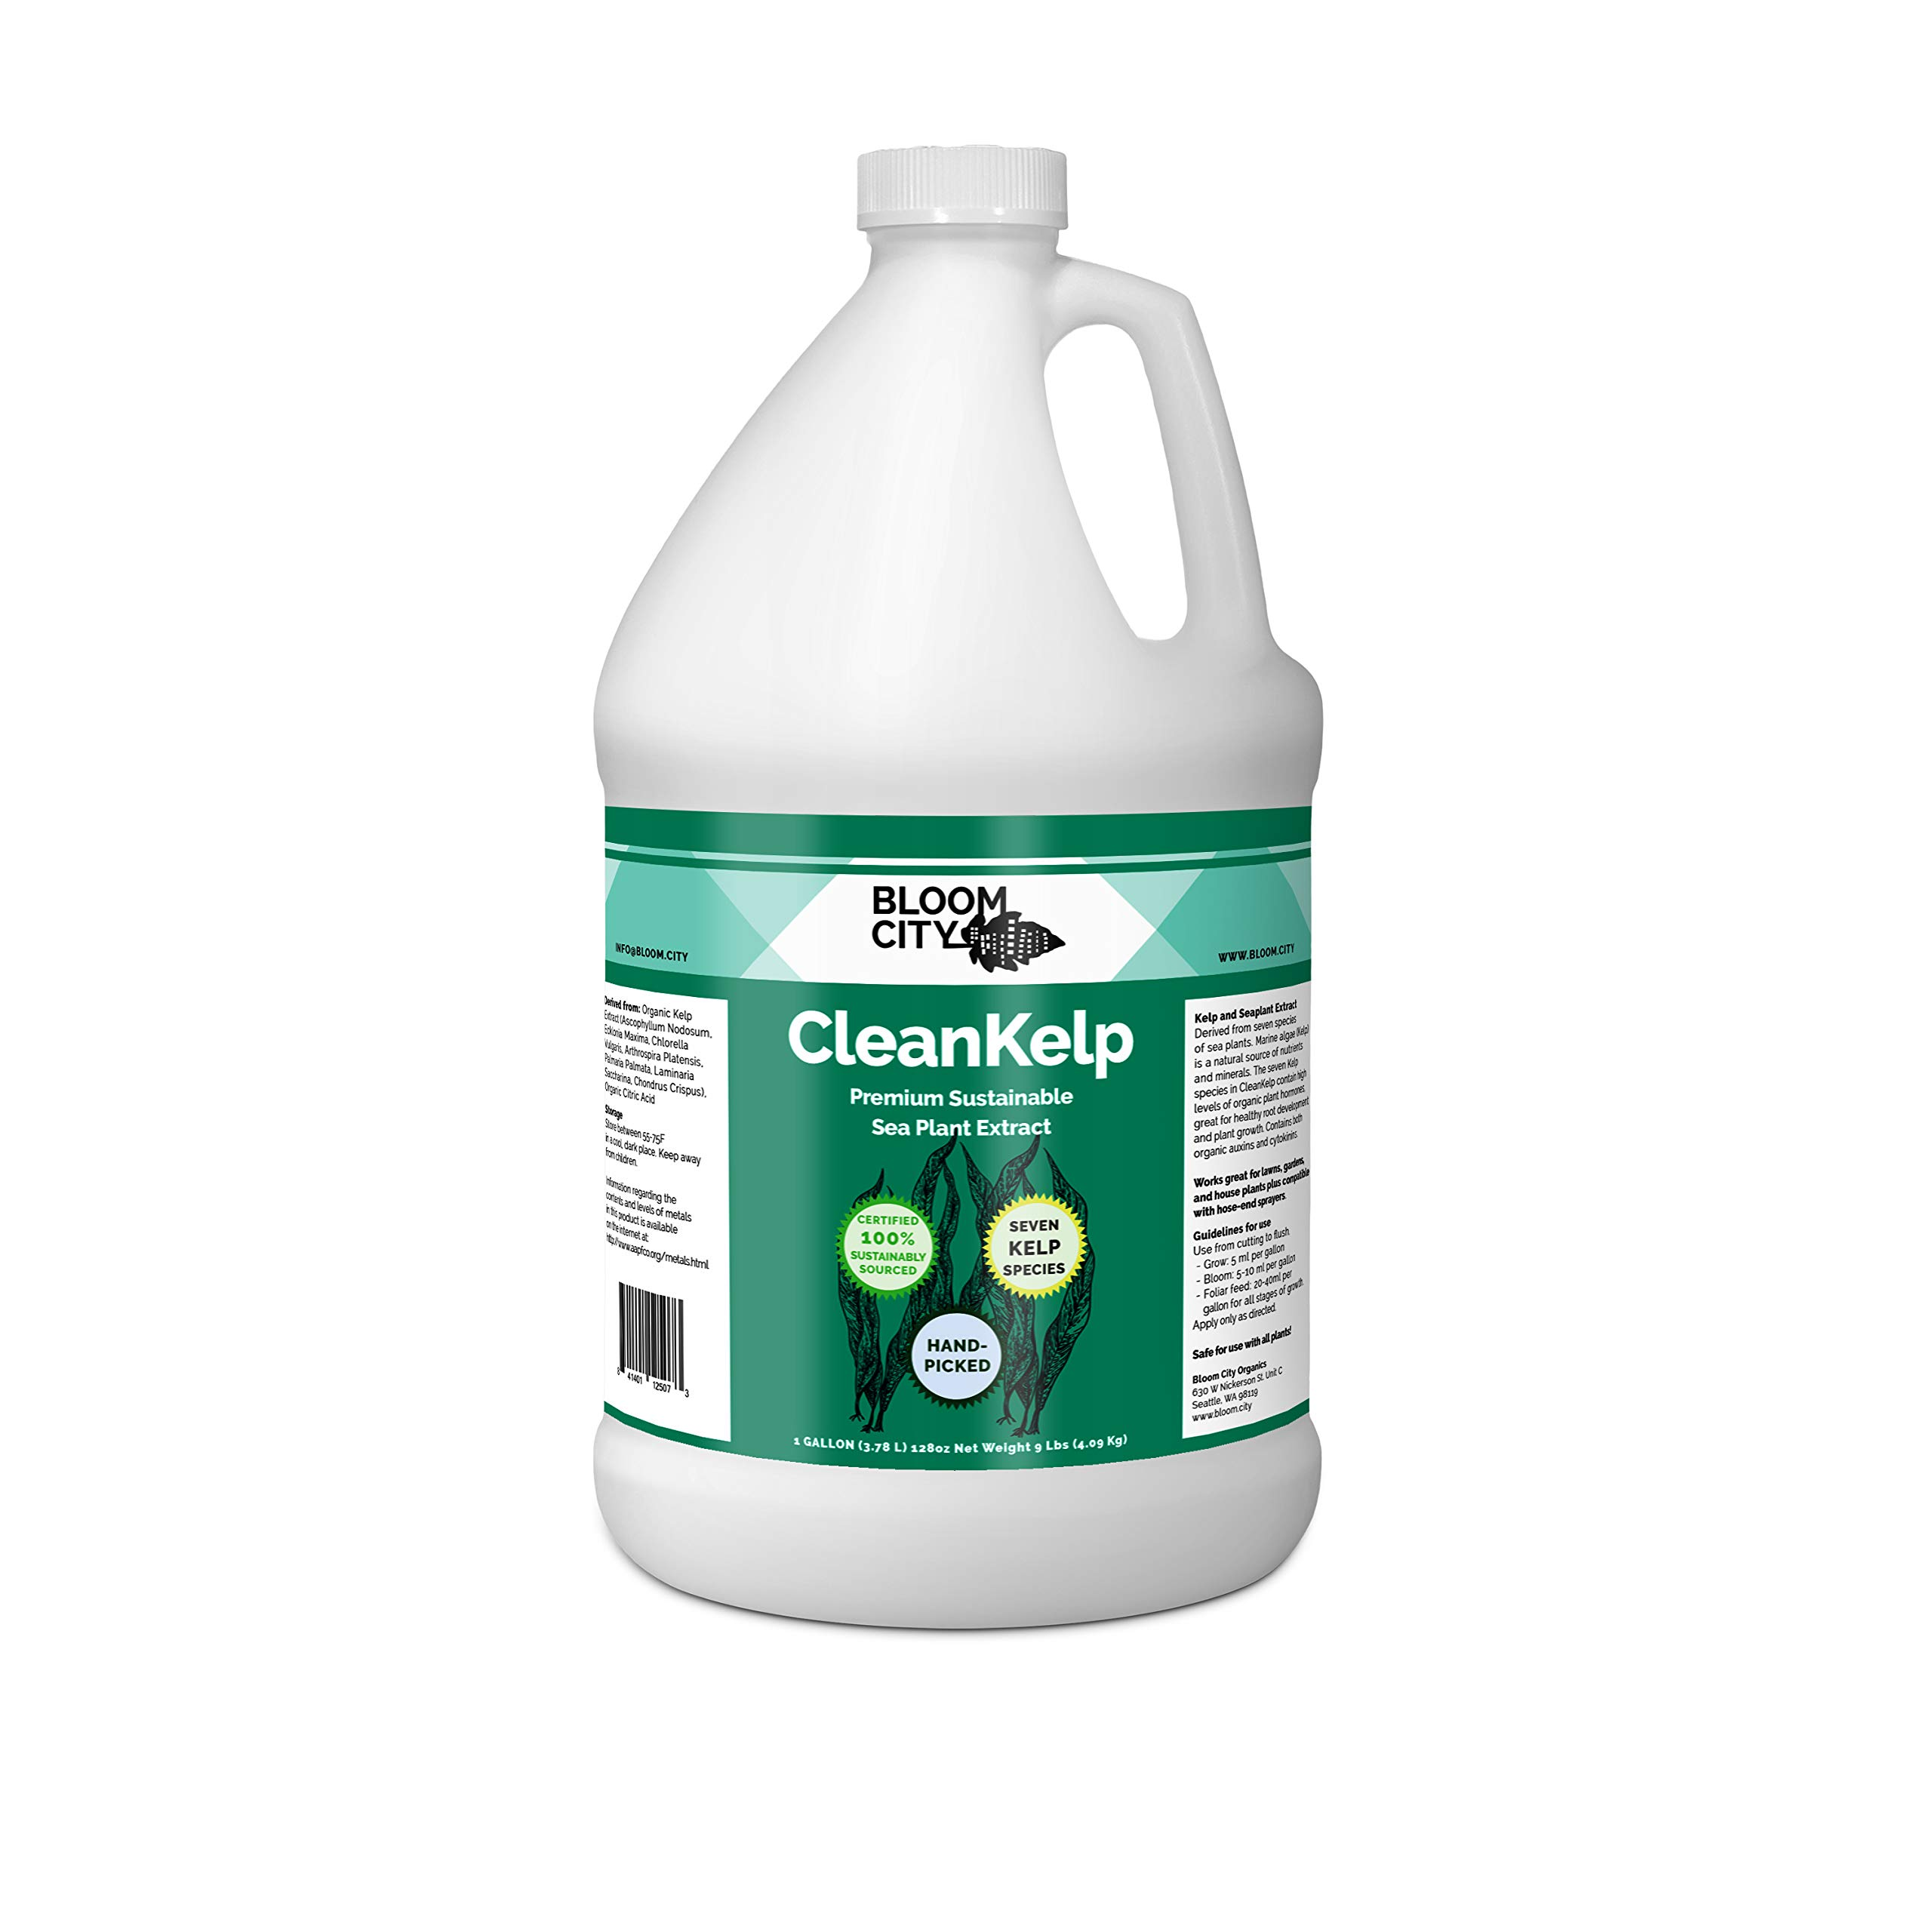 Organic Liquid Seaweed and Kelp Fertilizer Supplement by Bloom City Gallon, (128 oz) Concentrated Makes 750 Gallons